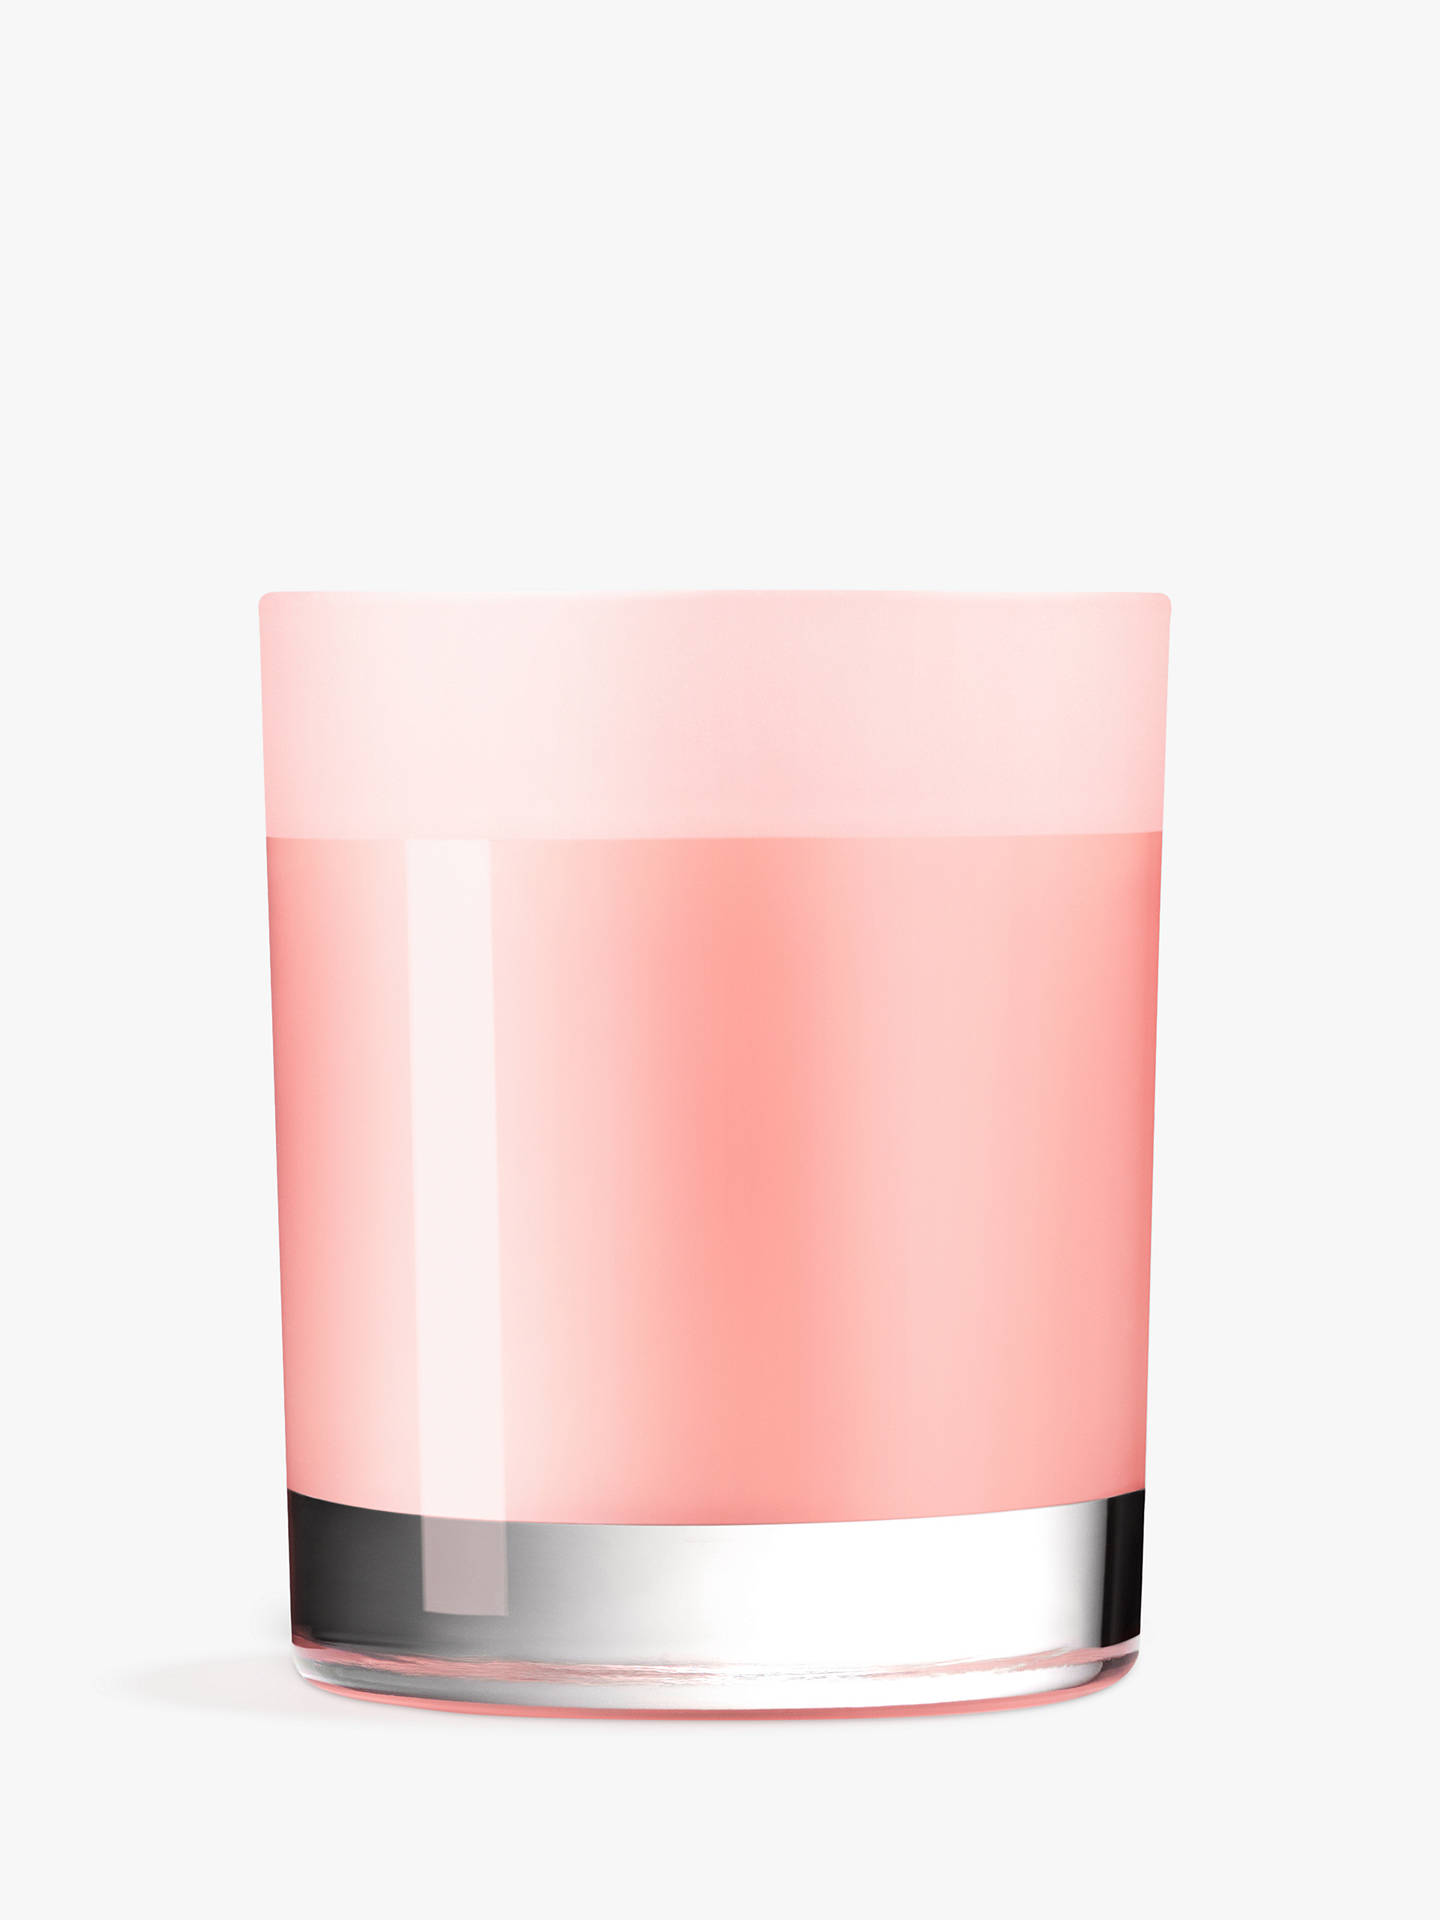 BuyMolton Brown Delicious Rhubarb & Rose Single Wick Candle, 180g Online at johnlewis.com